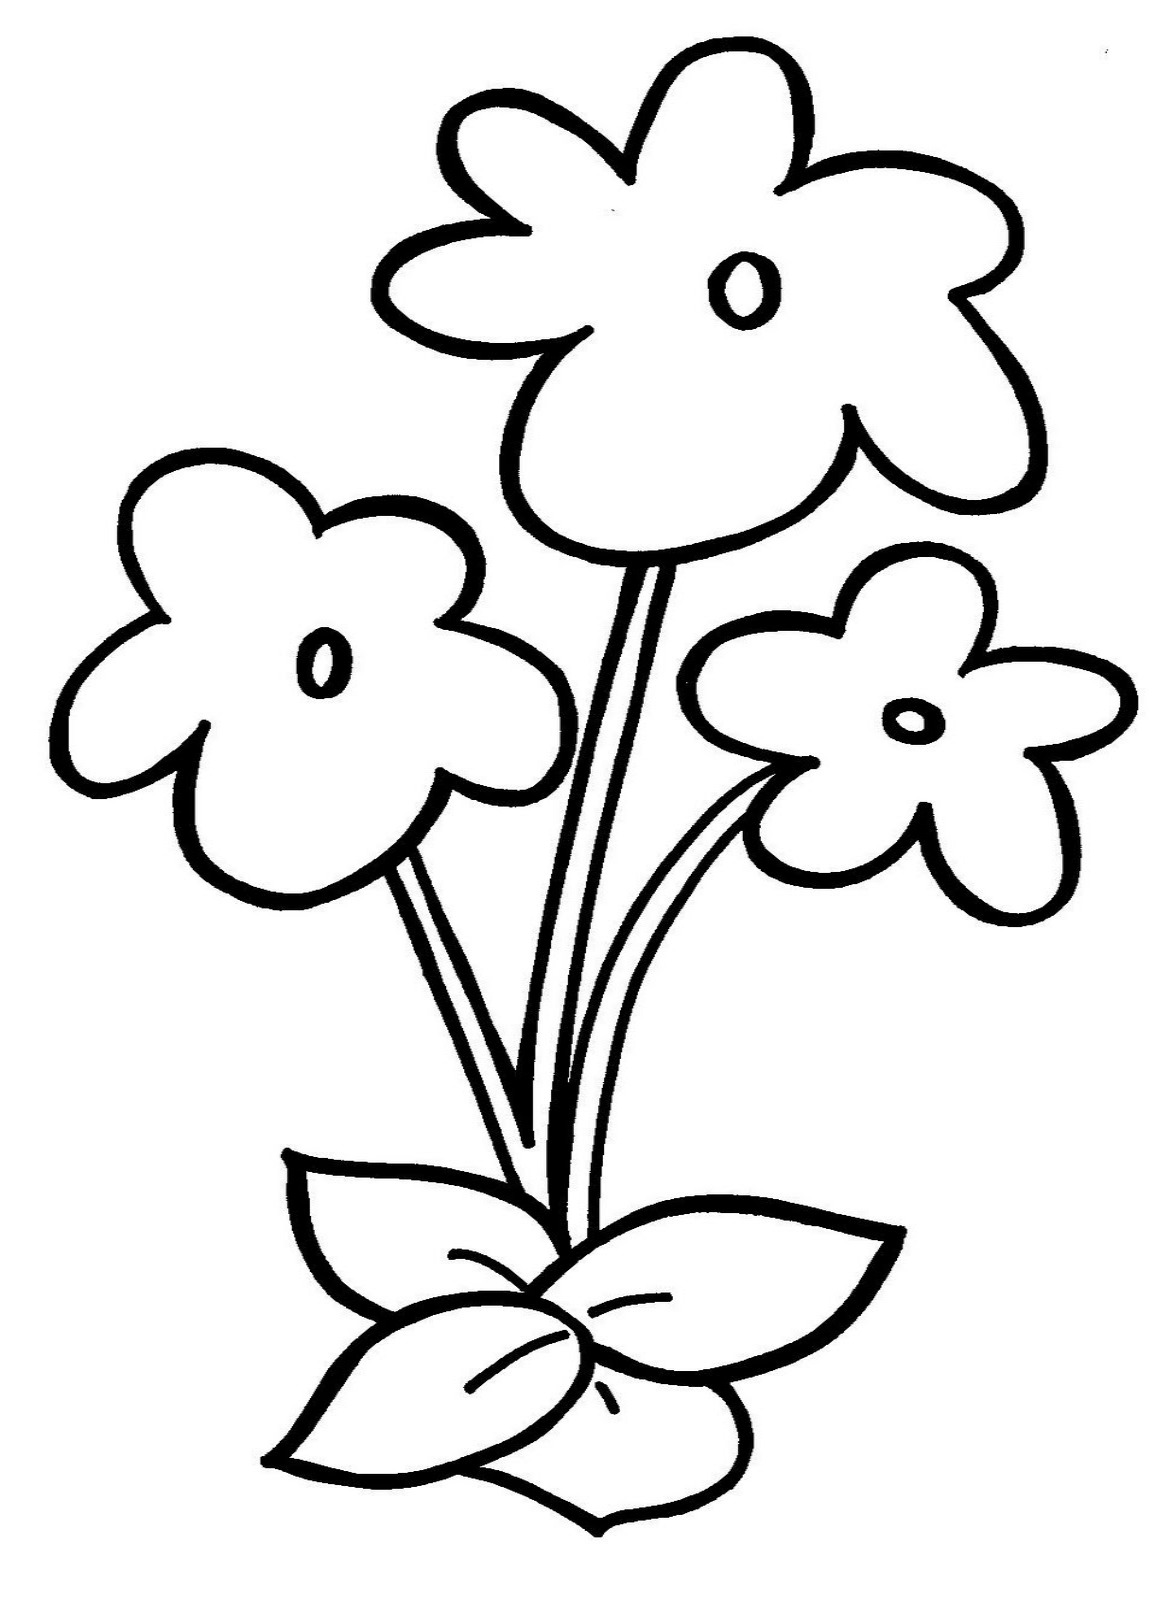 colouring pictures of flowers free printable flower coloring pages for kids best pictures flowers of colouring